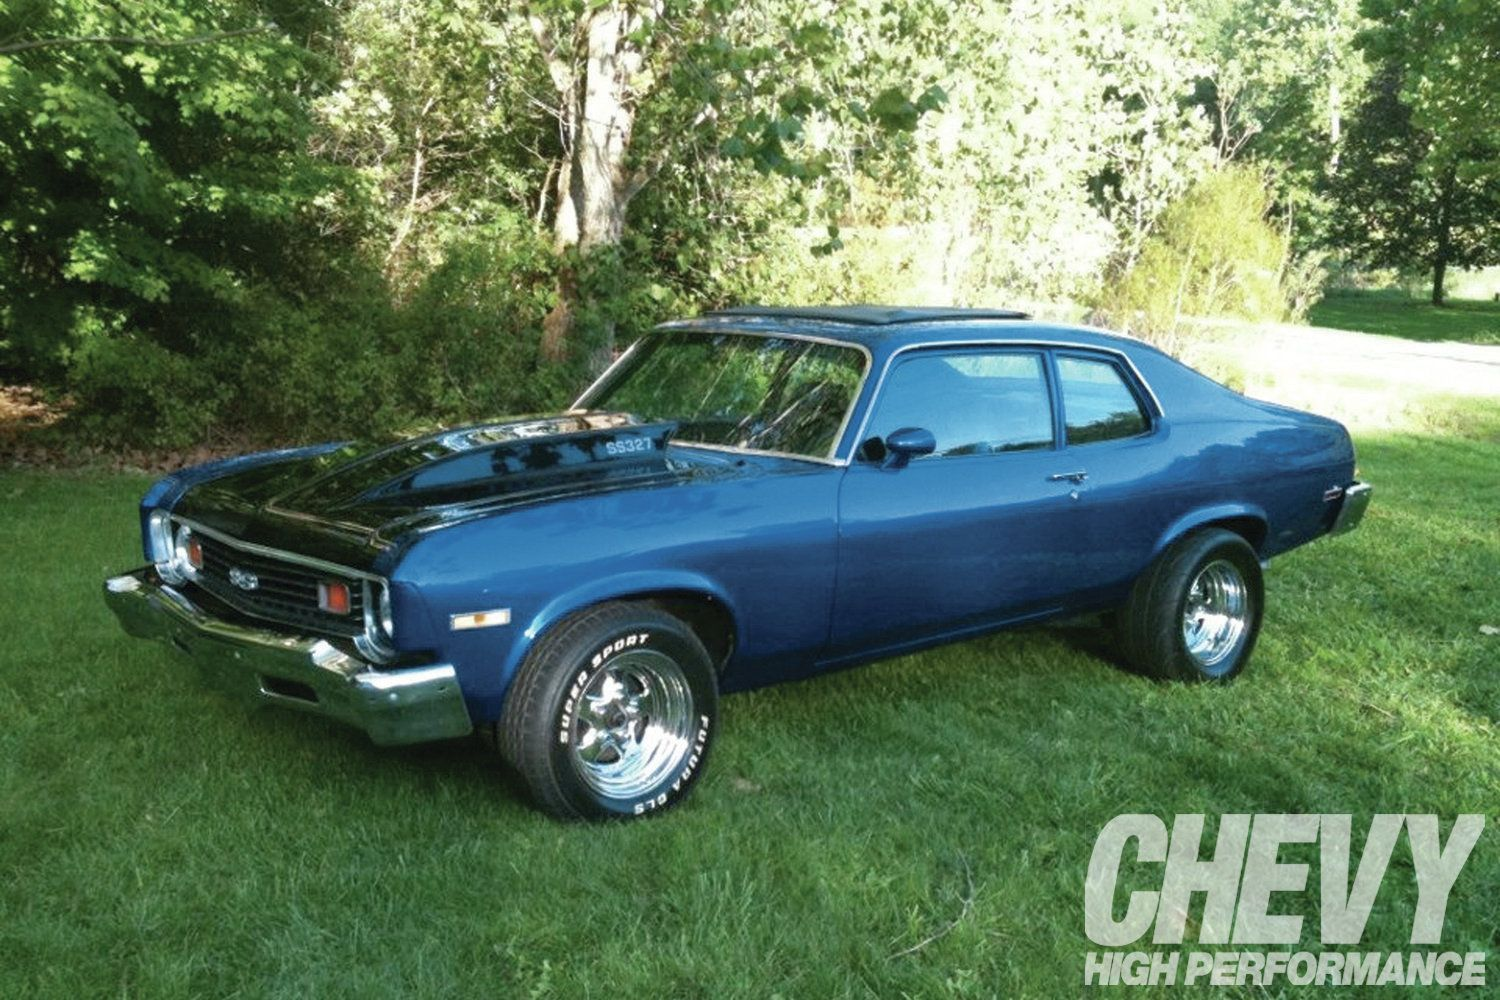 All Chevy 1973 chevy nova : 1973 Nova SS | 1973 Chevy Nova Ss | Chevelle & Nova | Pinterest ...